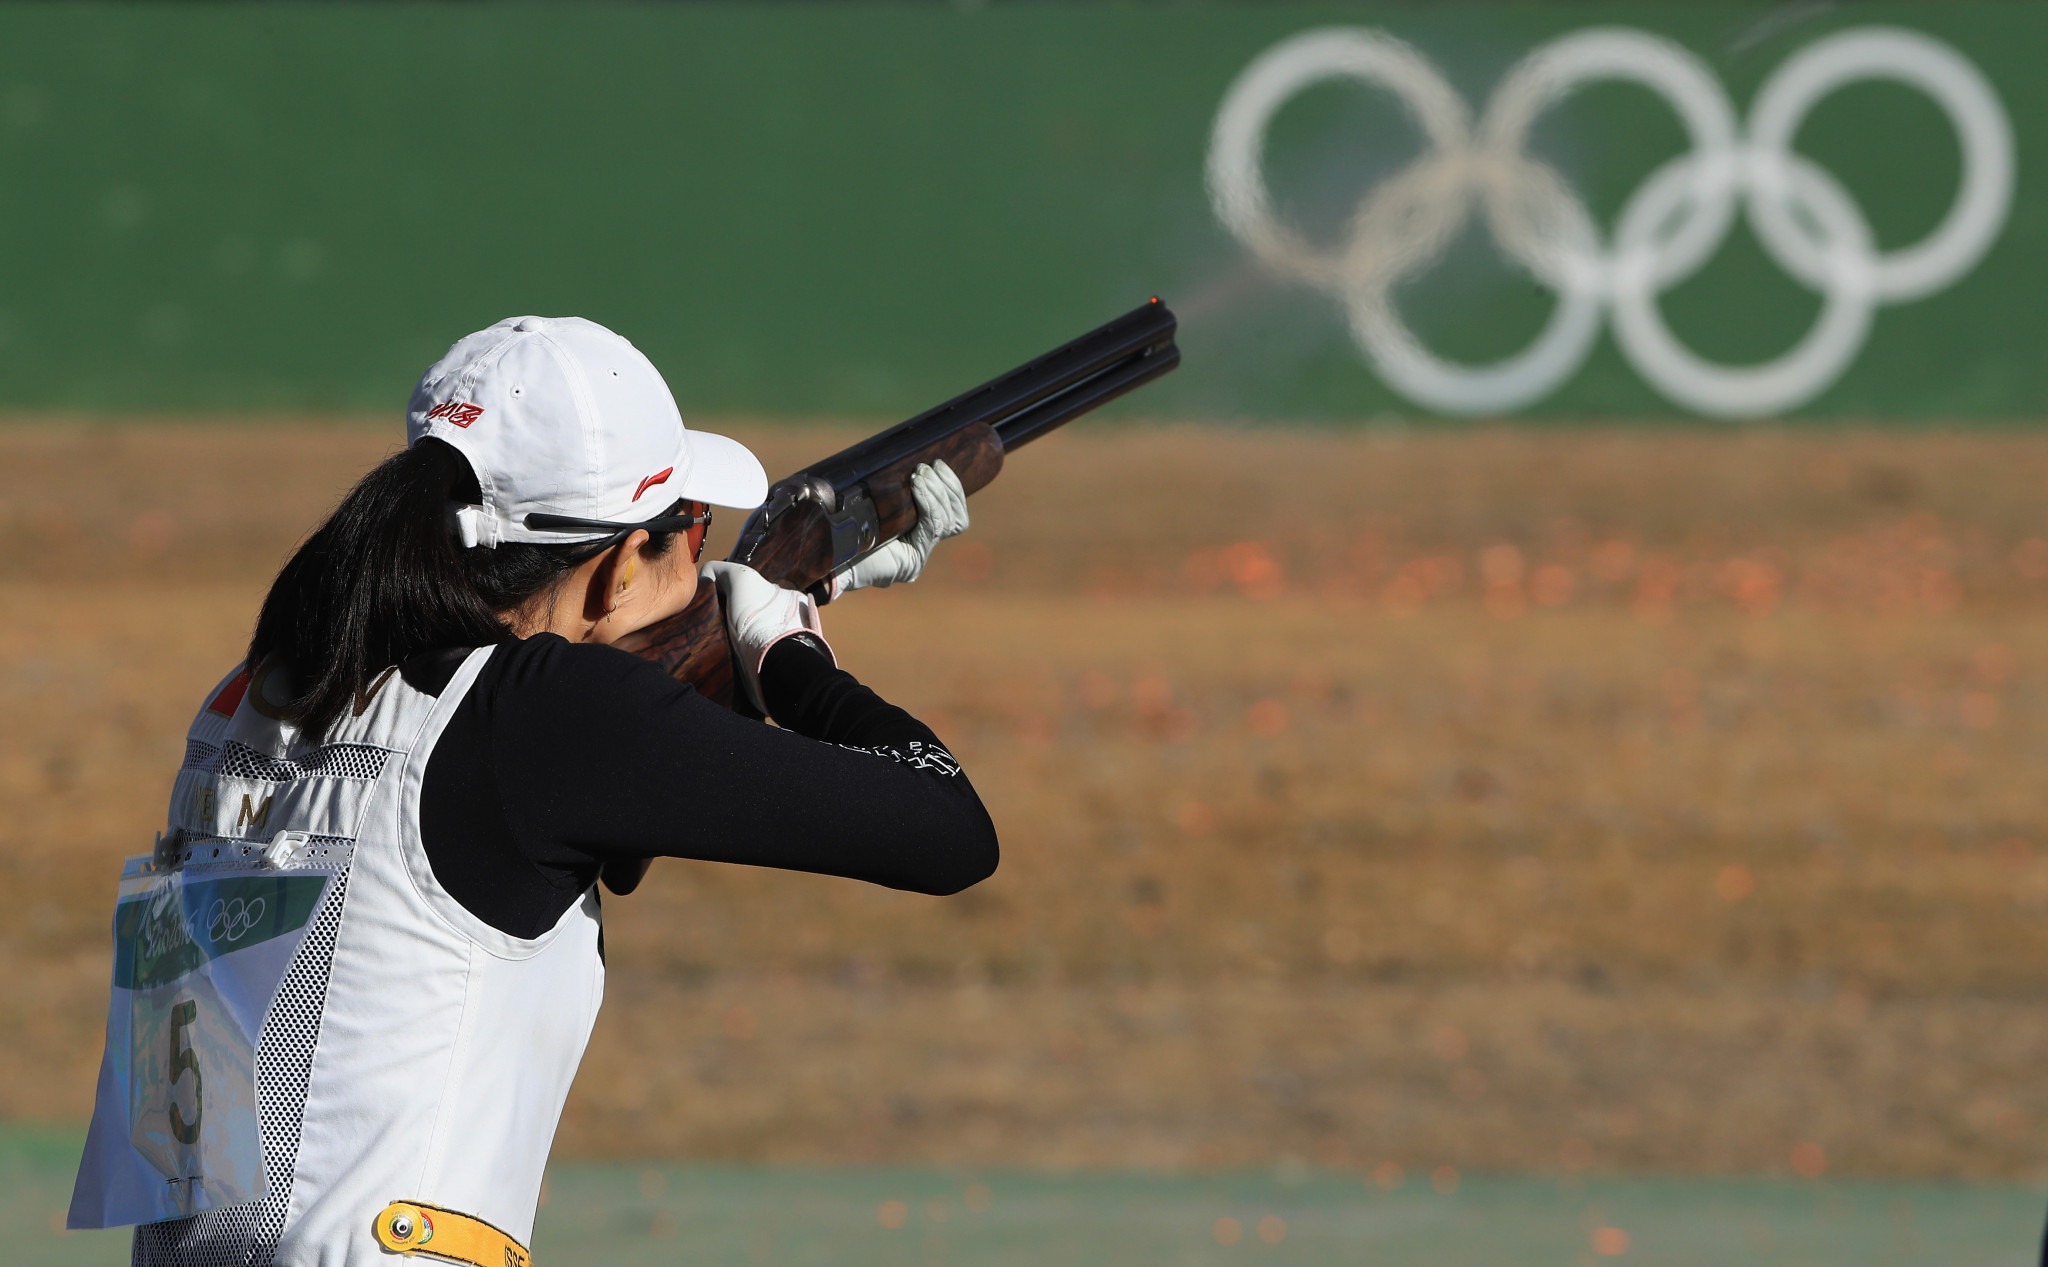 China's Wei beats world champion Connor to women's skeet title at ISSF Shotgun World Cup